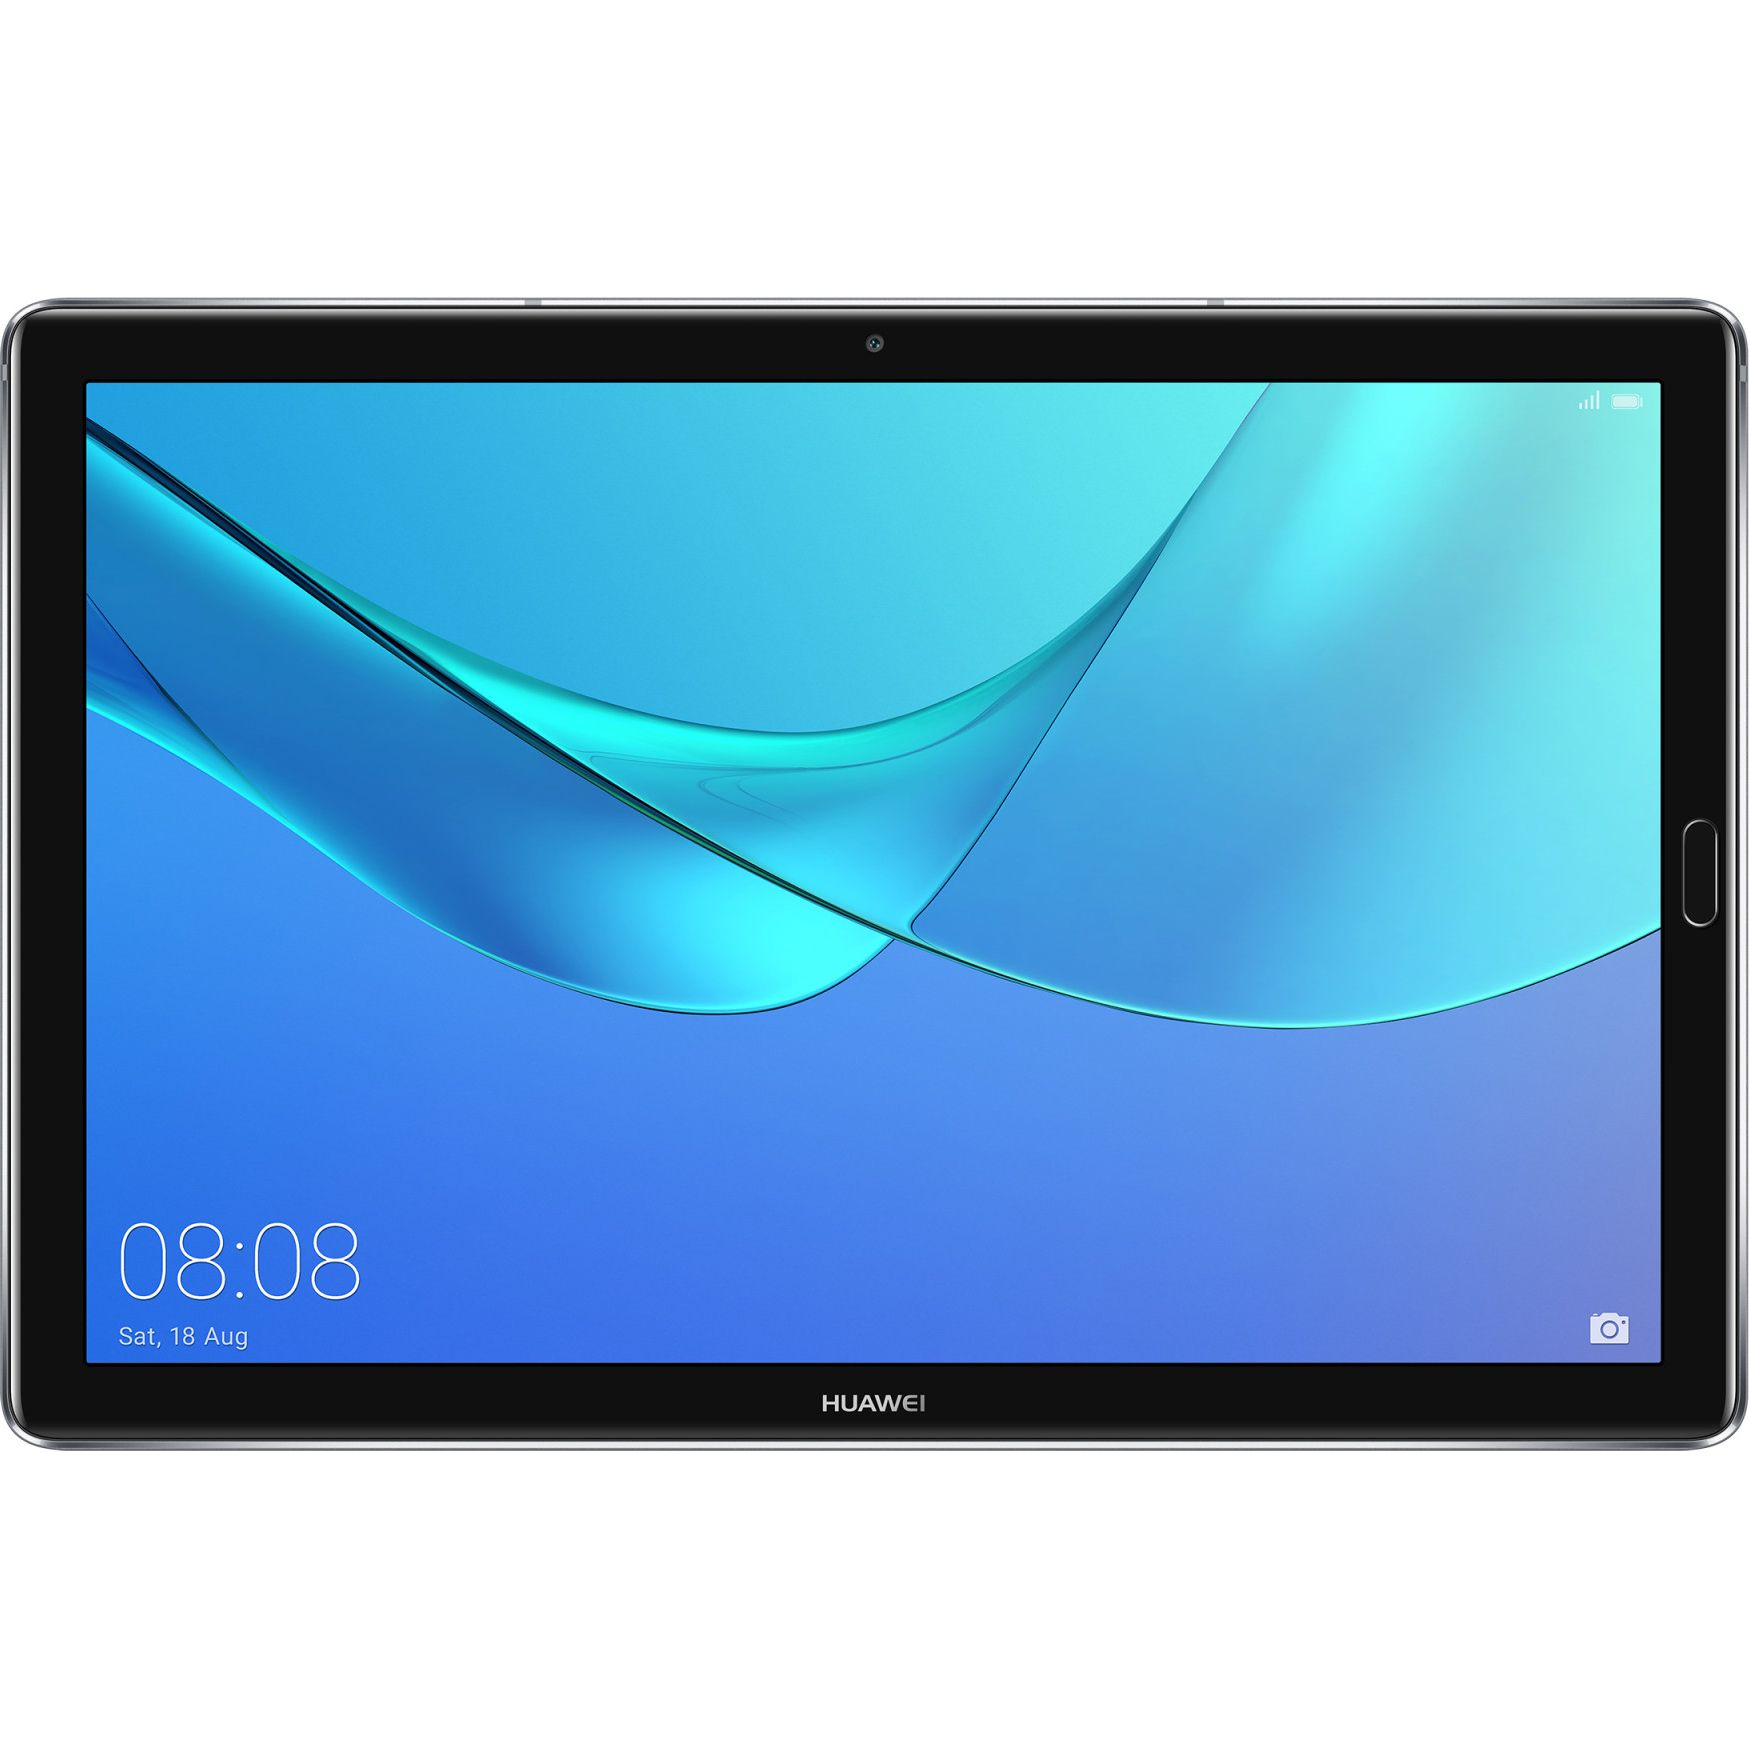 Tableta Huawei MediaPad M5 10 10.8 64GB Flash 4GB RAM WiFi + 4G Grey